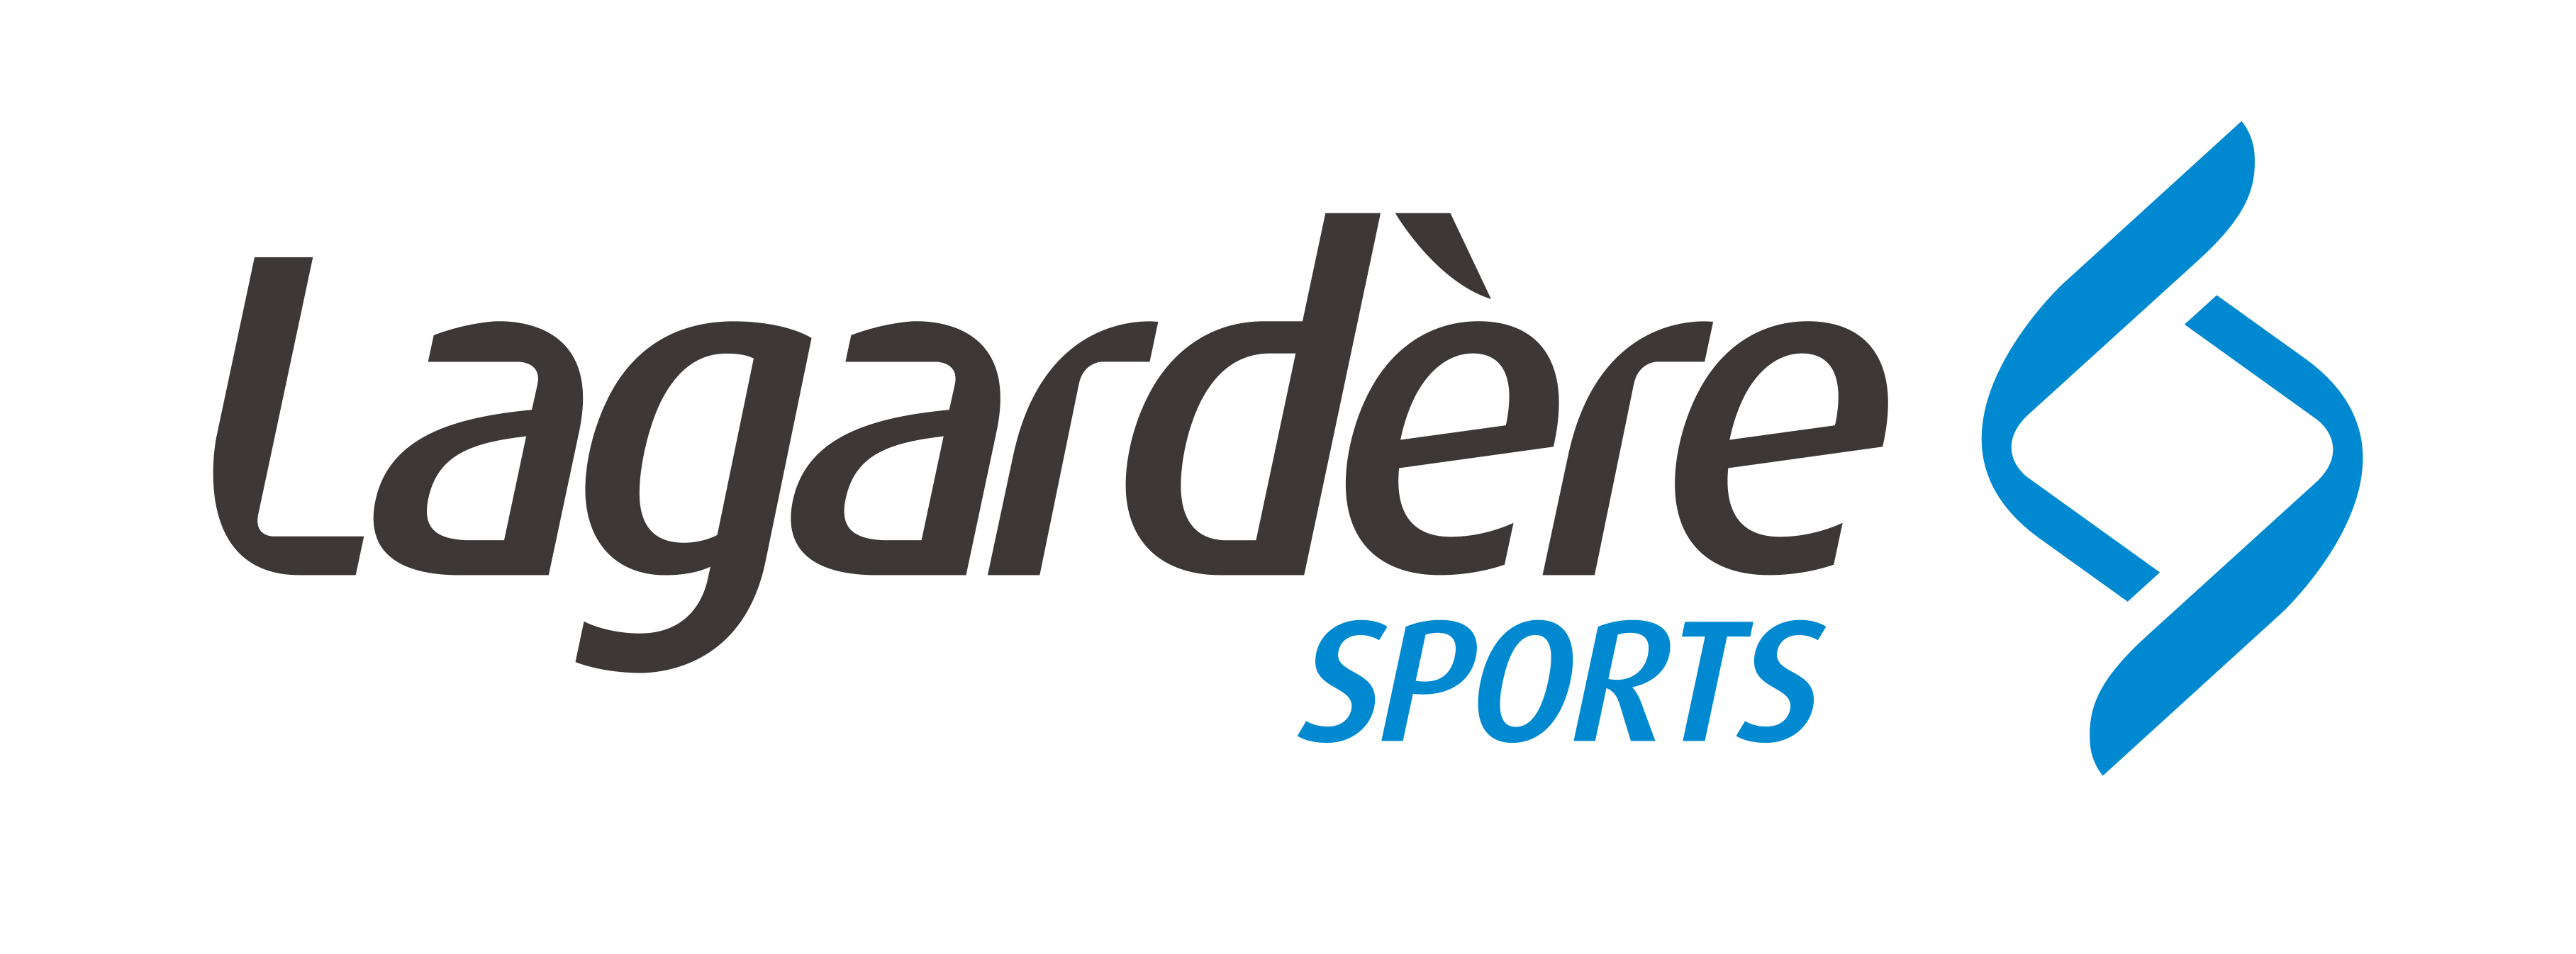 Legadere Sports